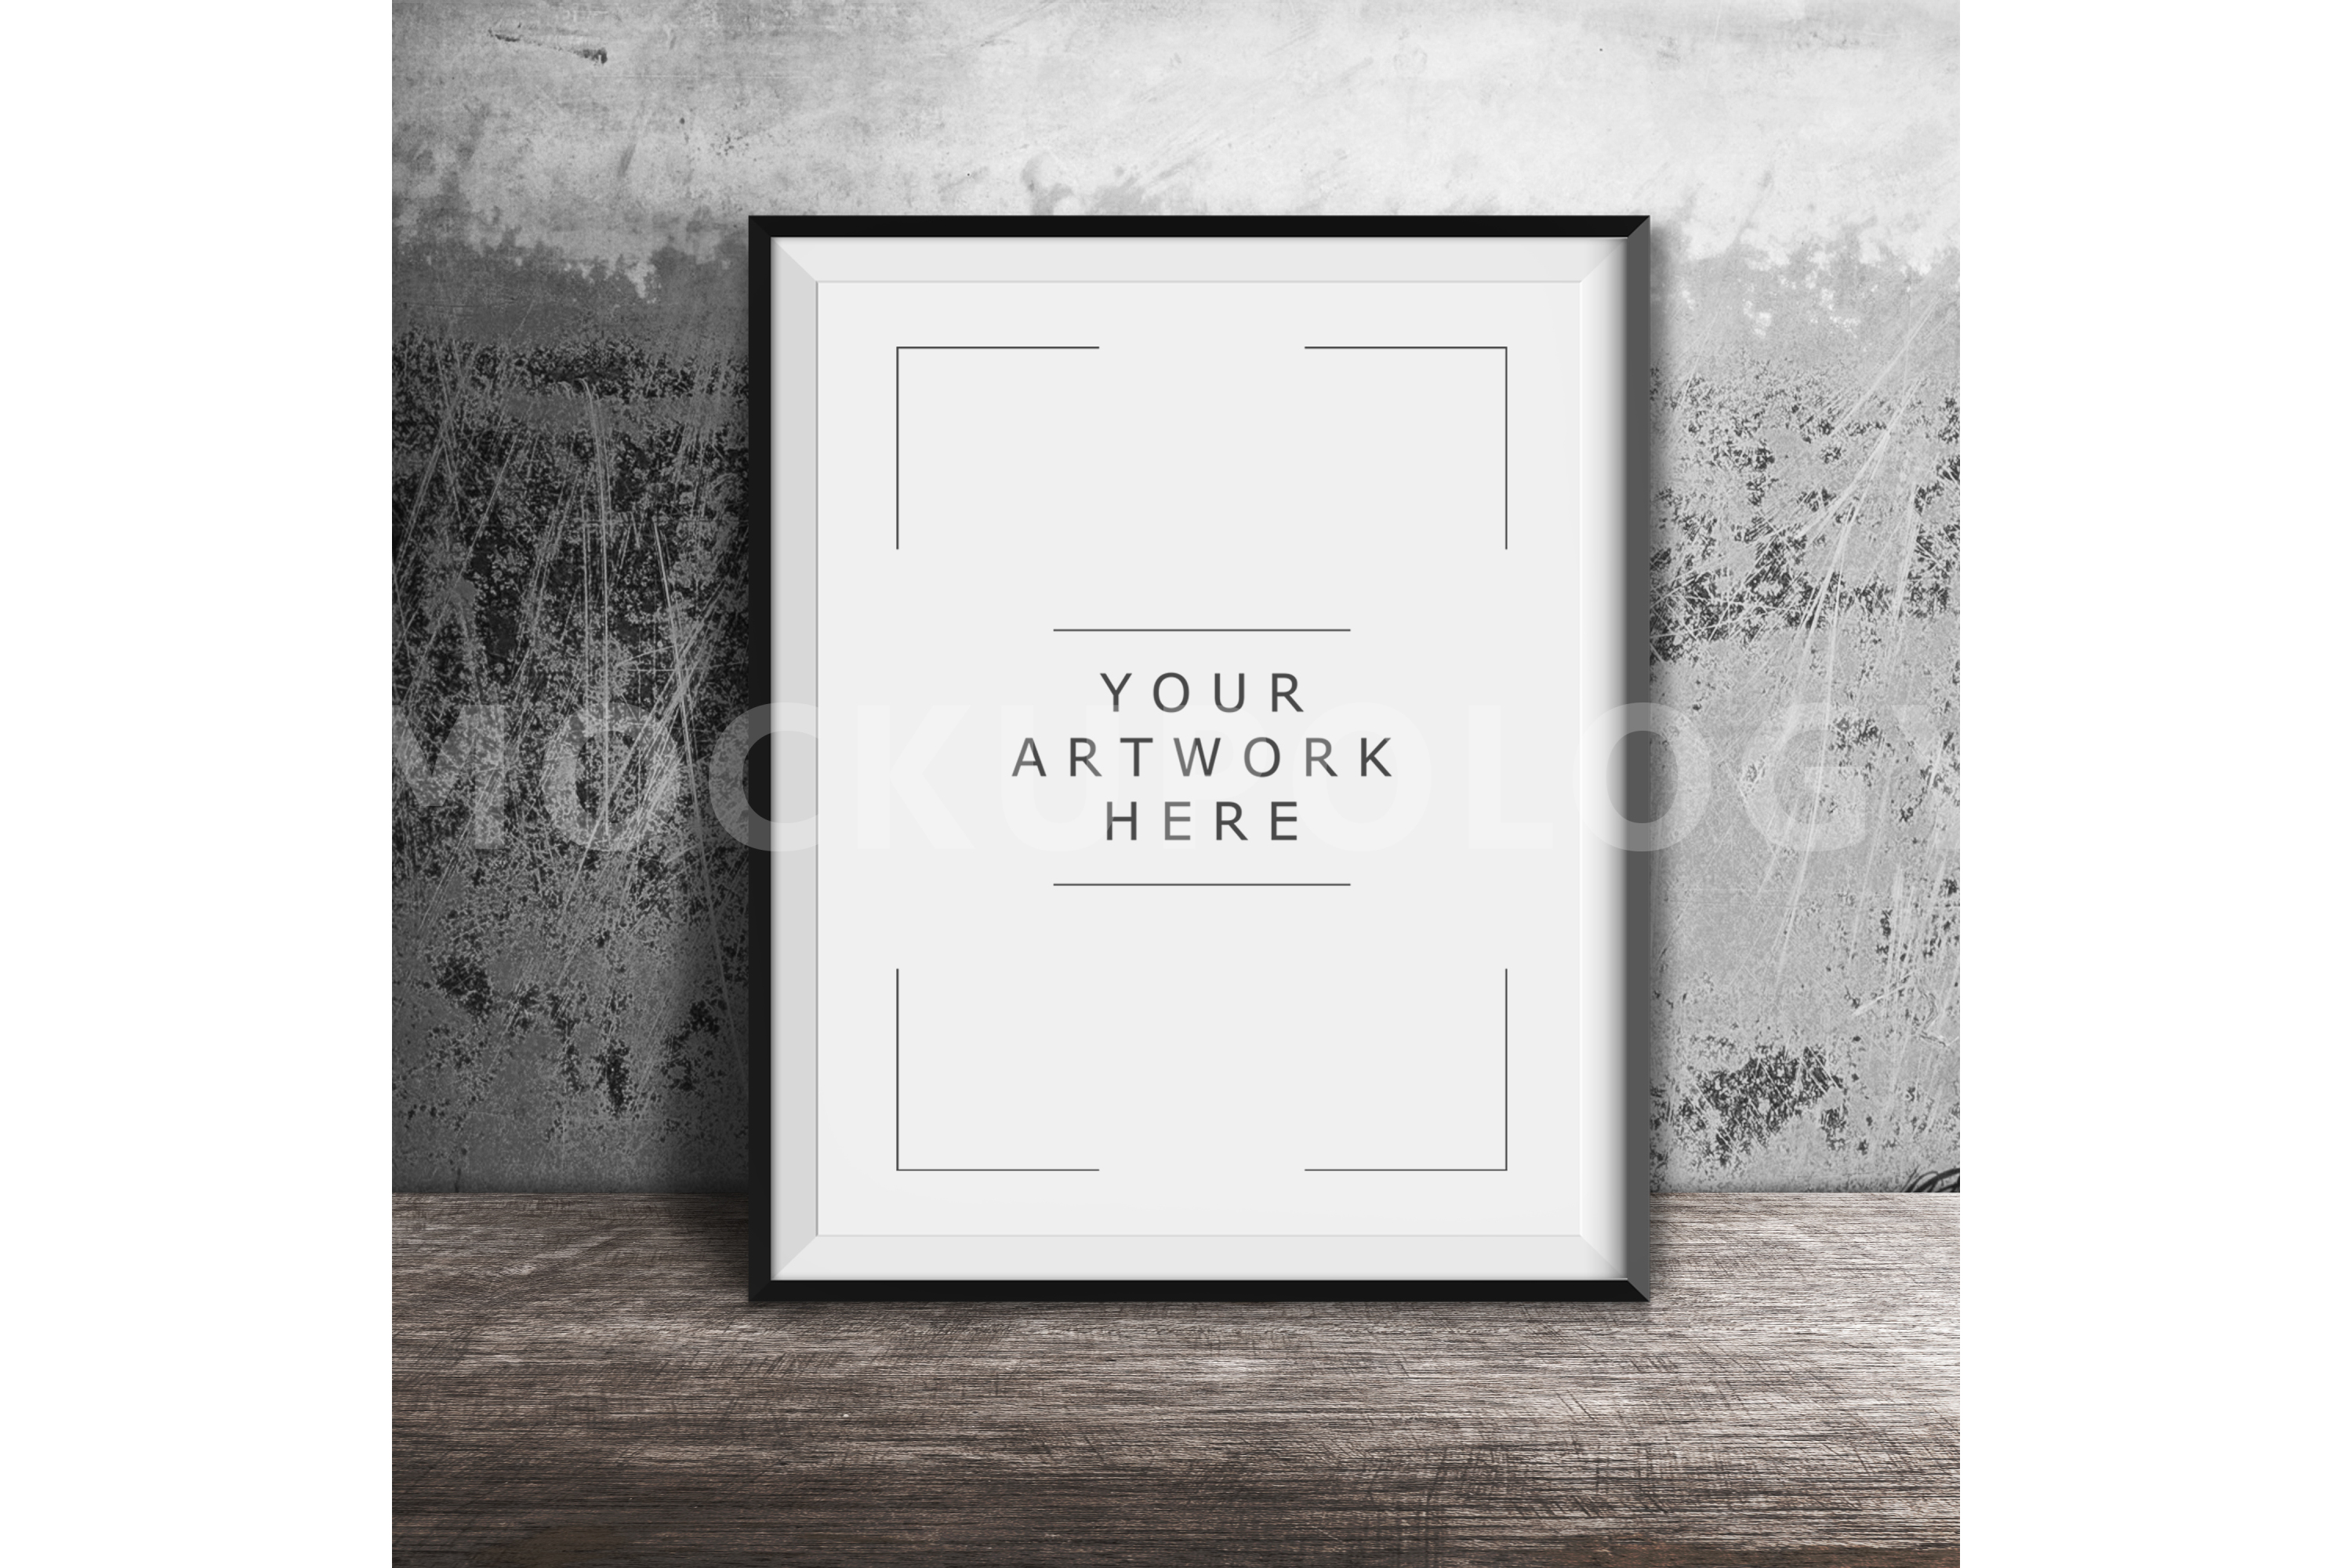 8x10 16x20 24x30 Vertical DIGITAL Black Frame Mockup, Styled ...